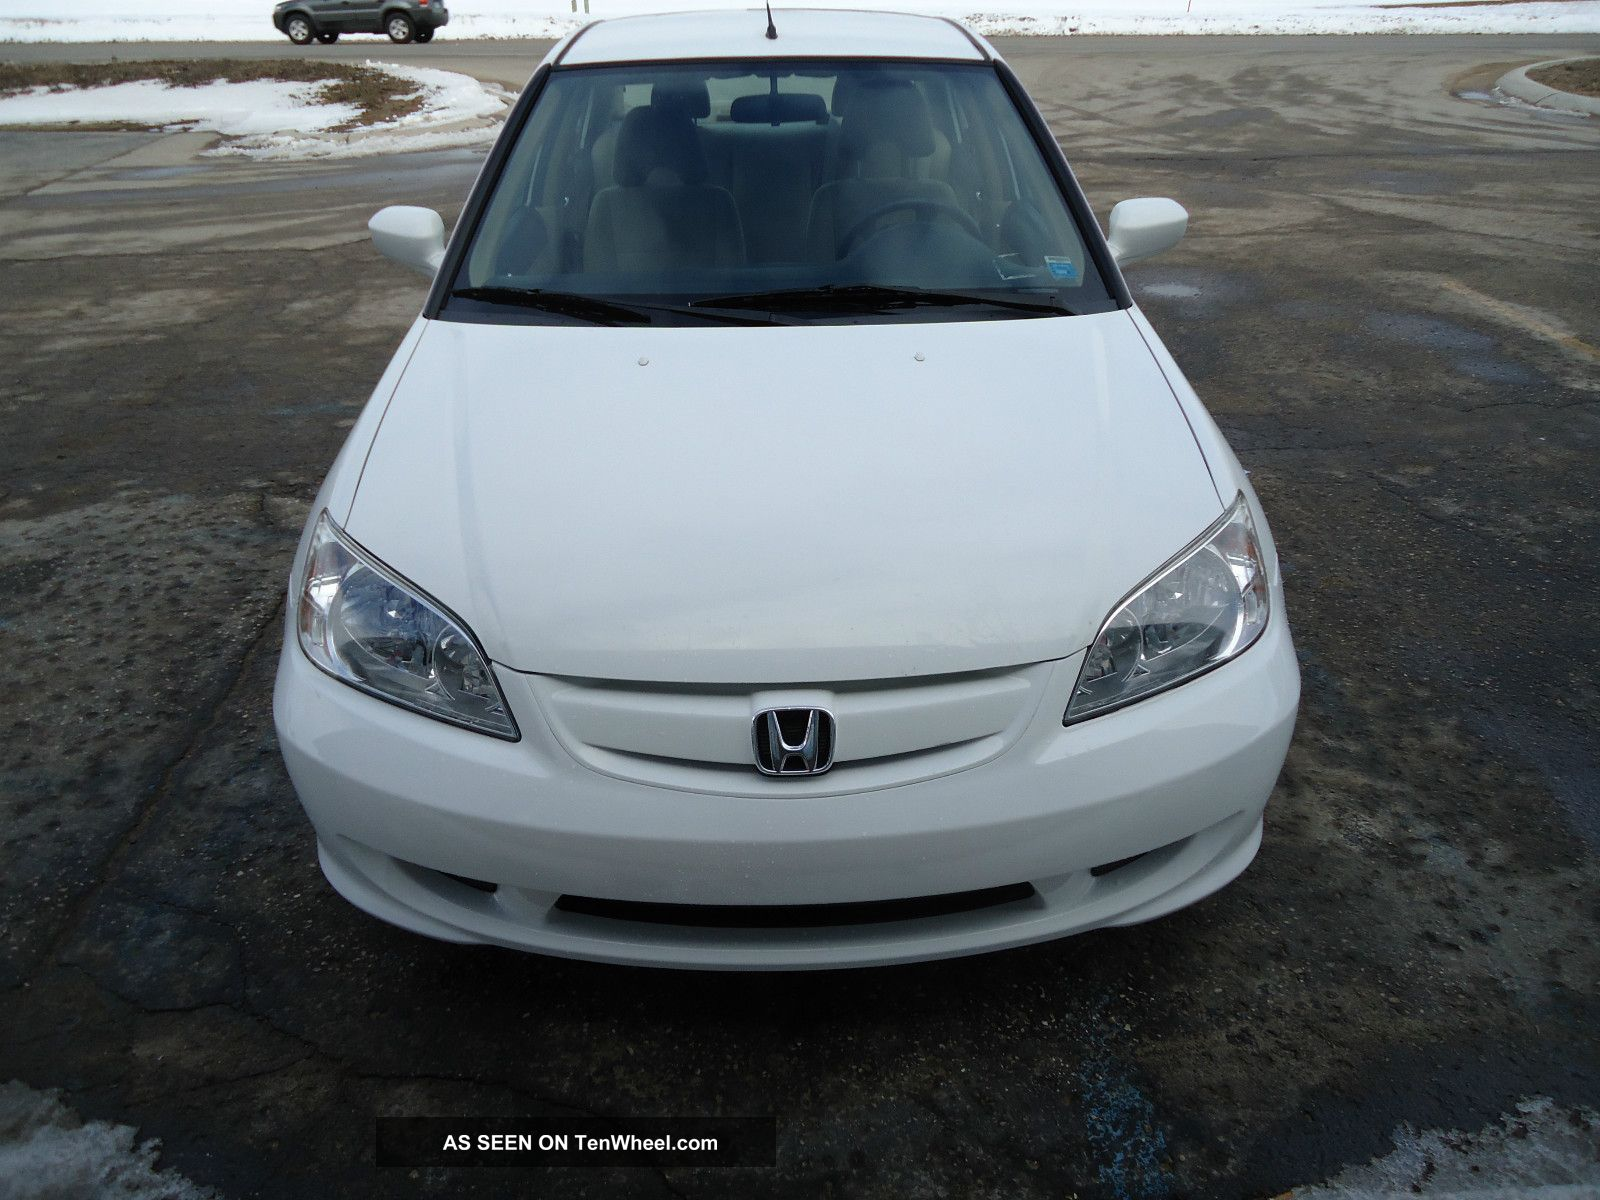 Honda Civic 1.3 2004 photo - 8